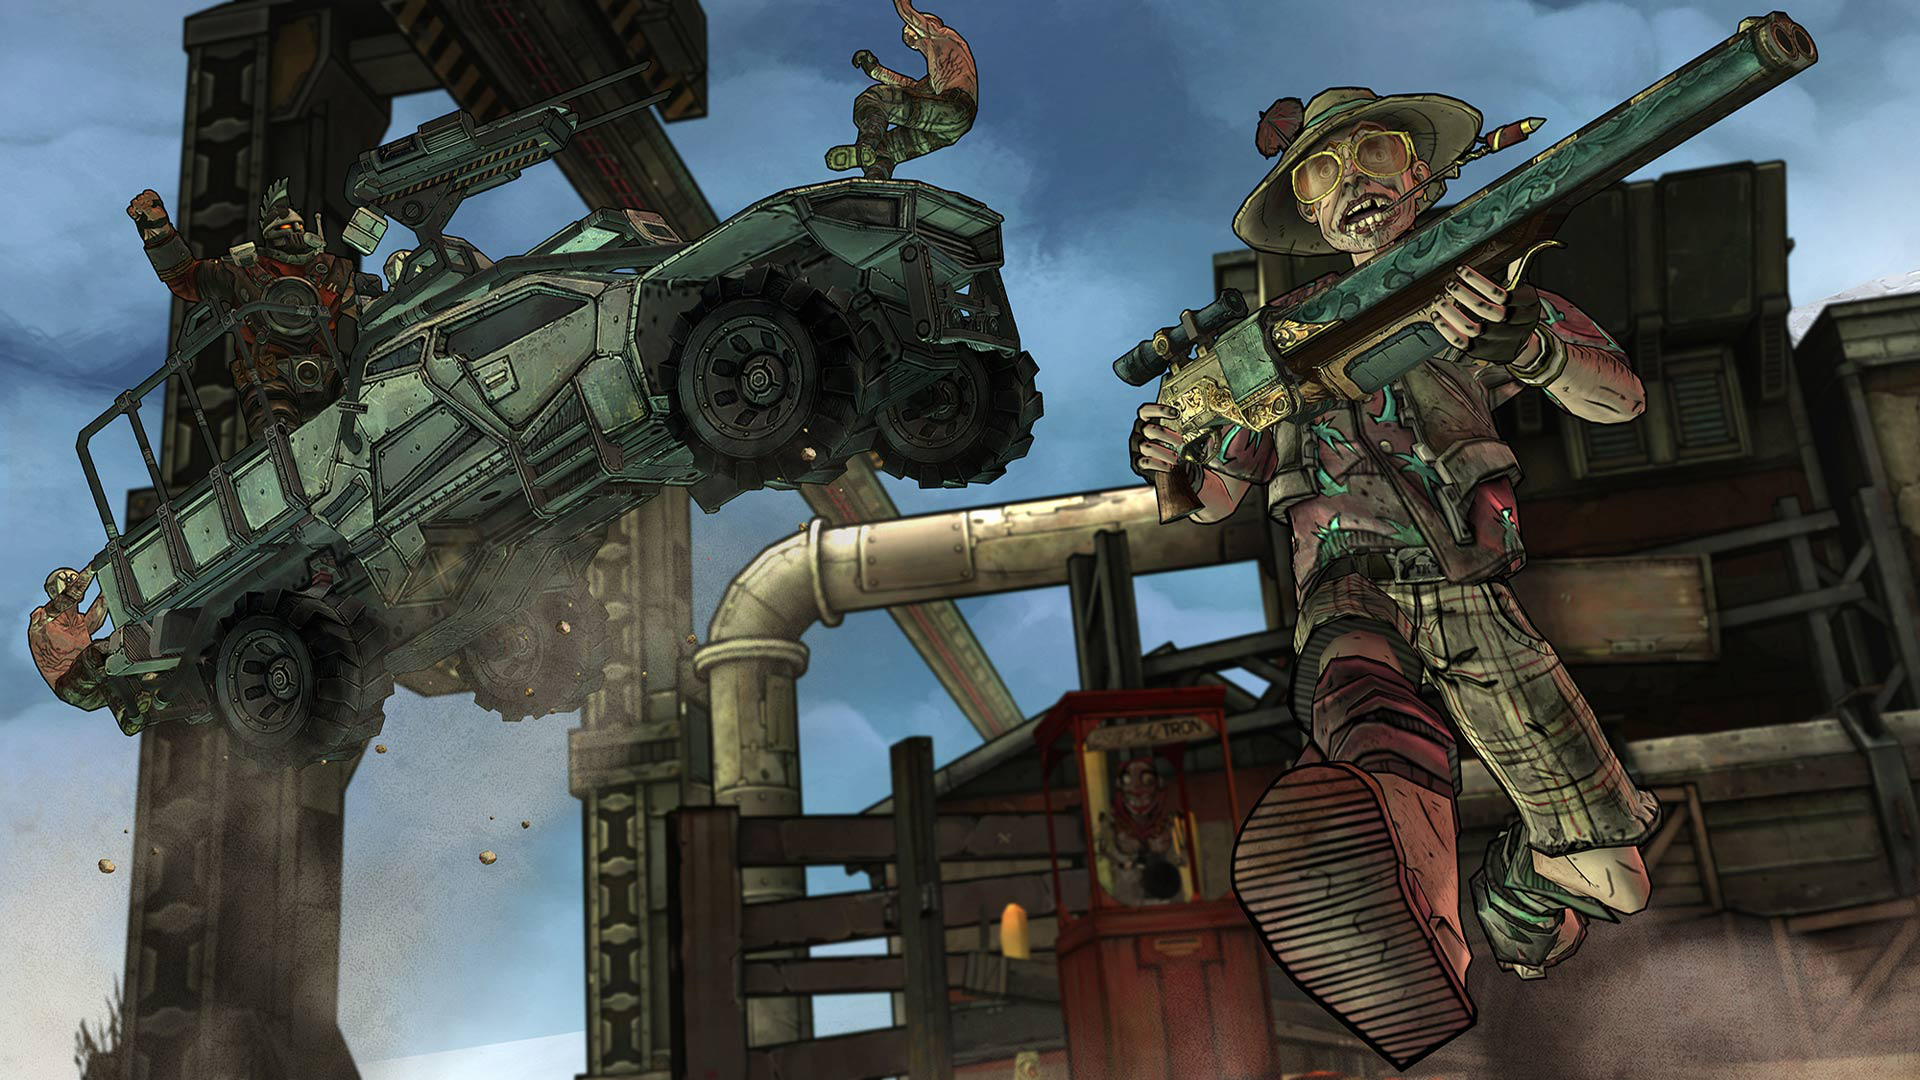 Tales from the Borderlands screenshot #10